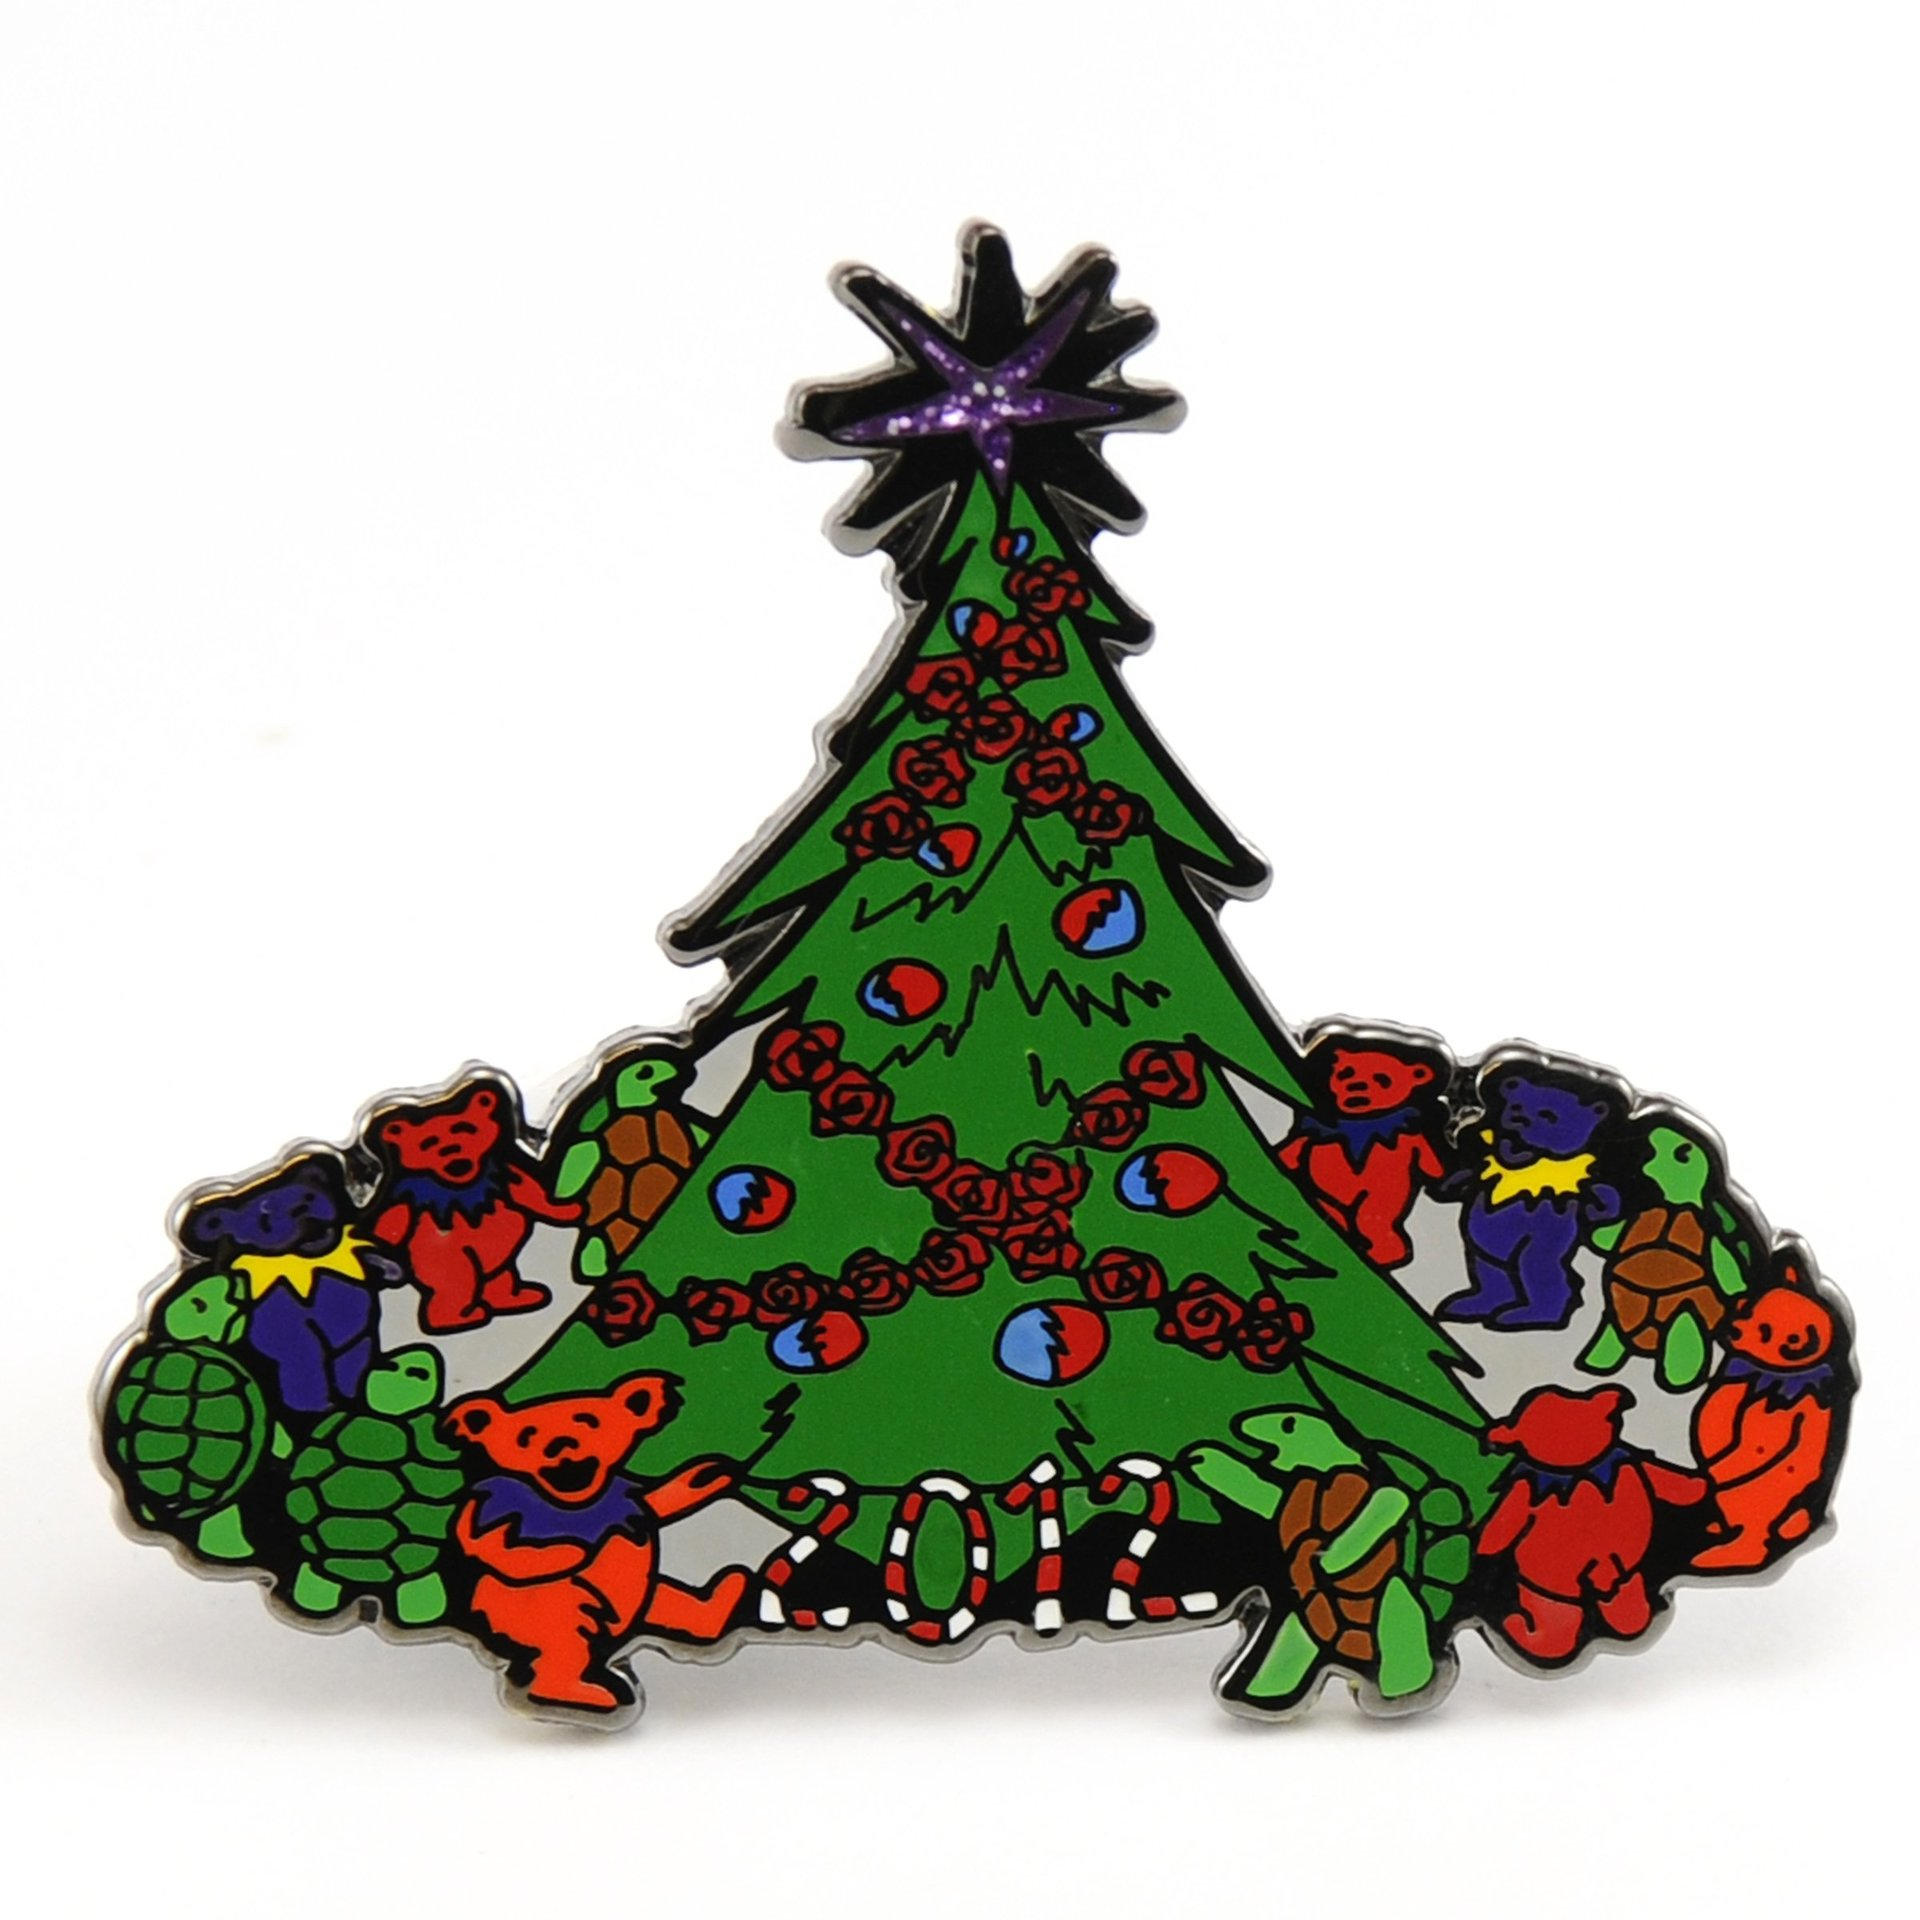 2012 Grateful Dead Christmas Pin